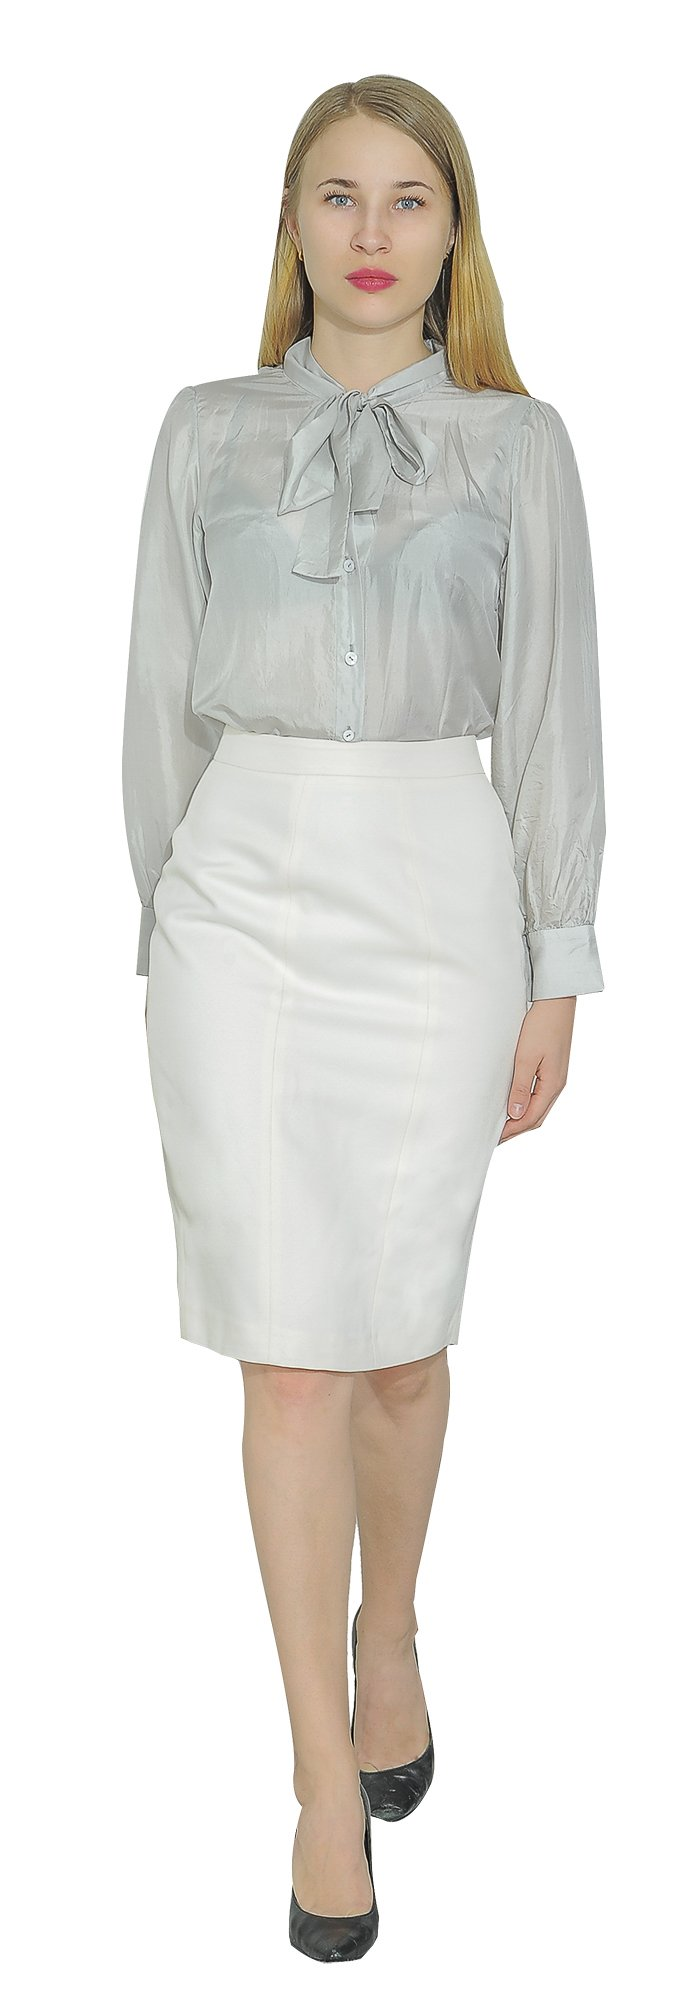 Marycrafts Women's Lined Pencil Skirt 4 Work Business Office 10 Beige by Marycrafts (Image #2)